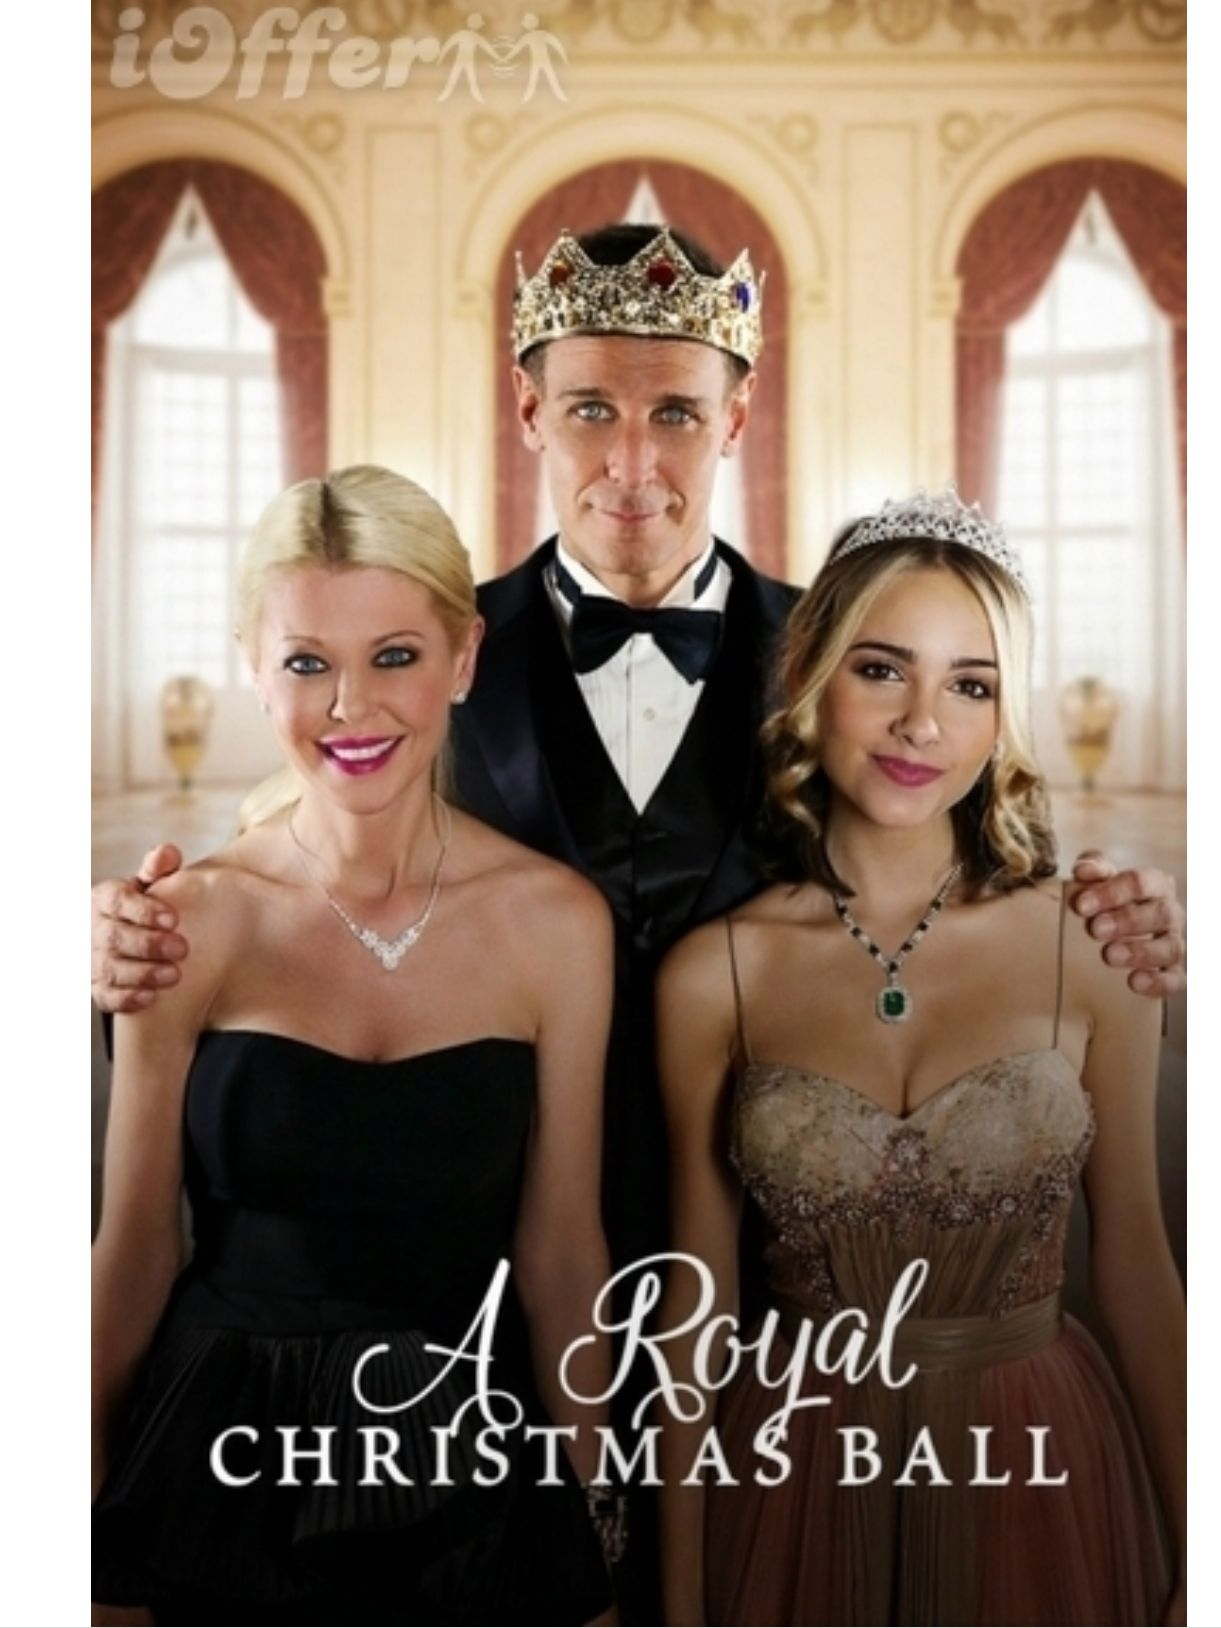 Pin by Cassandra Dubreuil Fiore on movies to watch | Royal christmas, Hallmark christmas movies ...